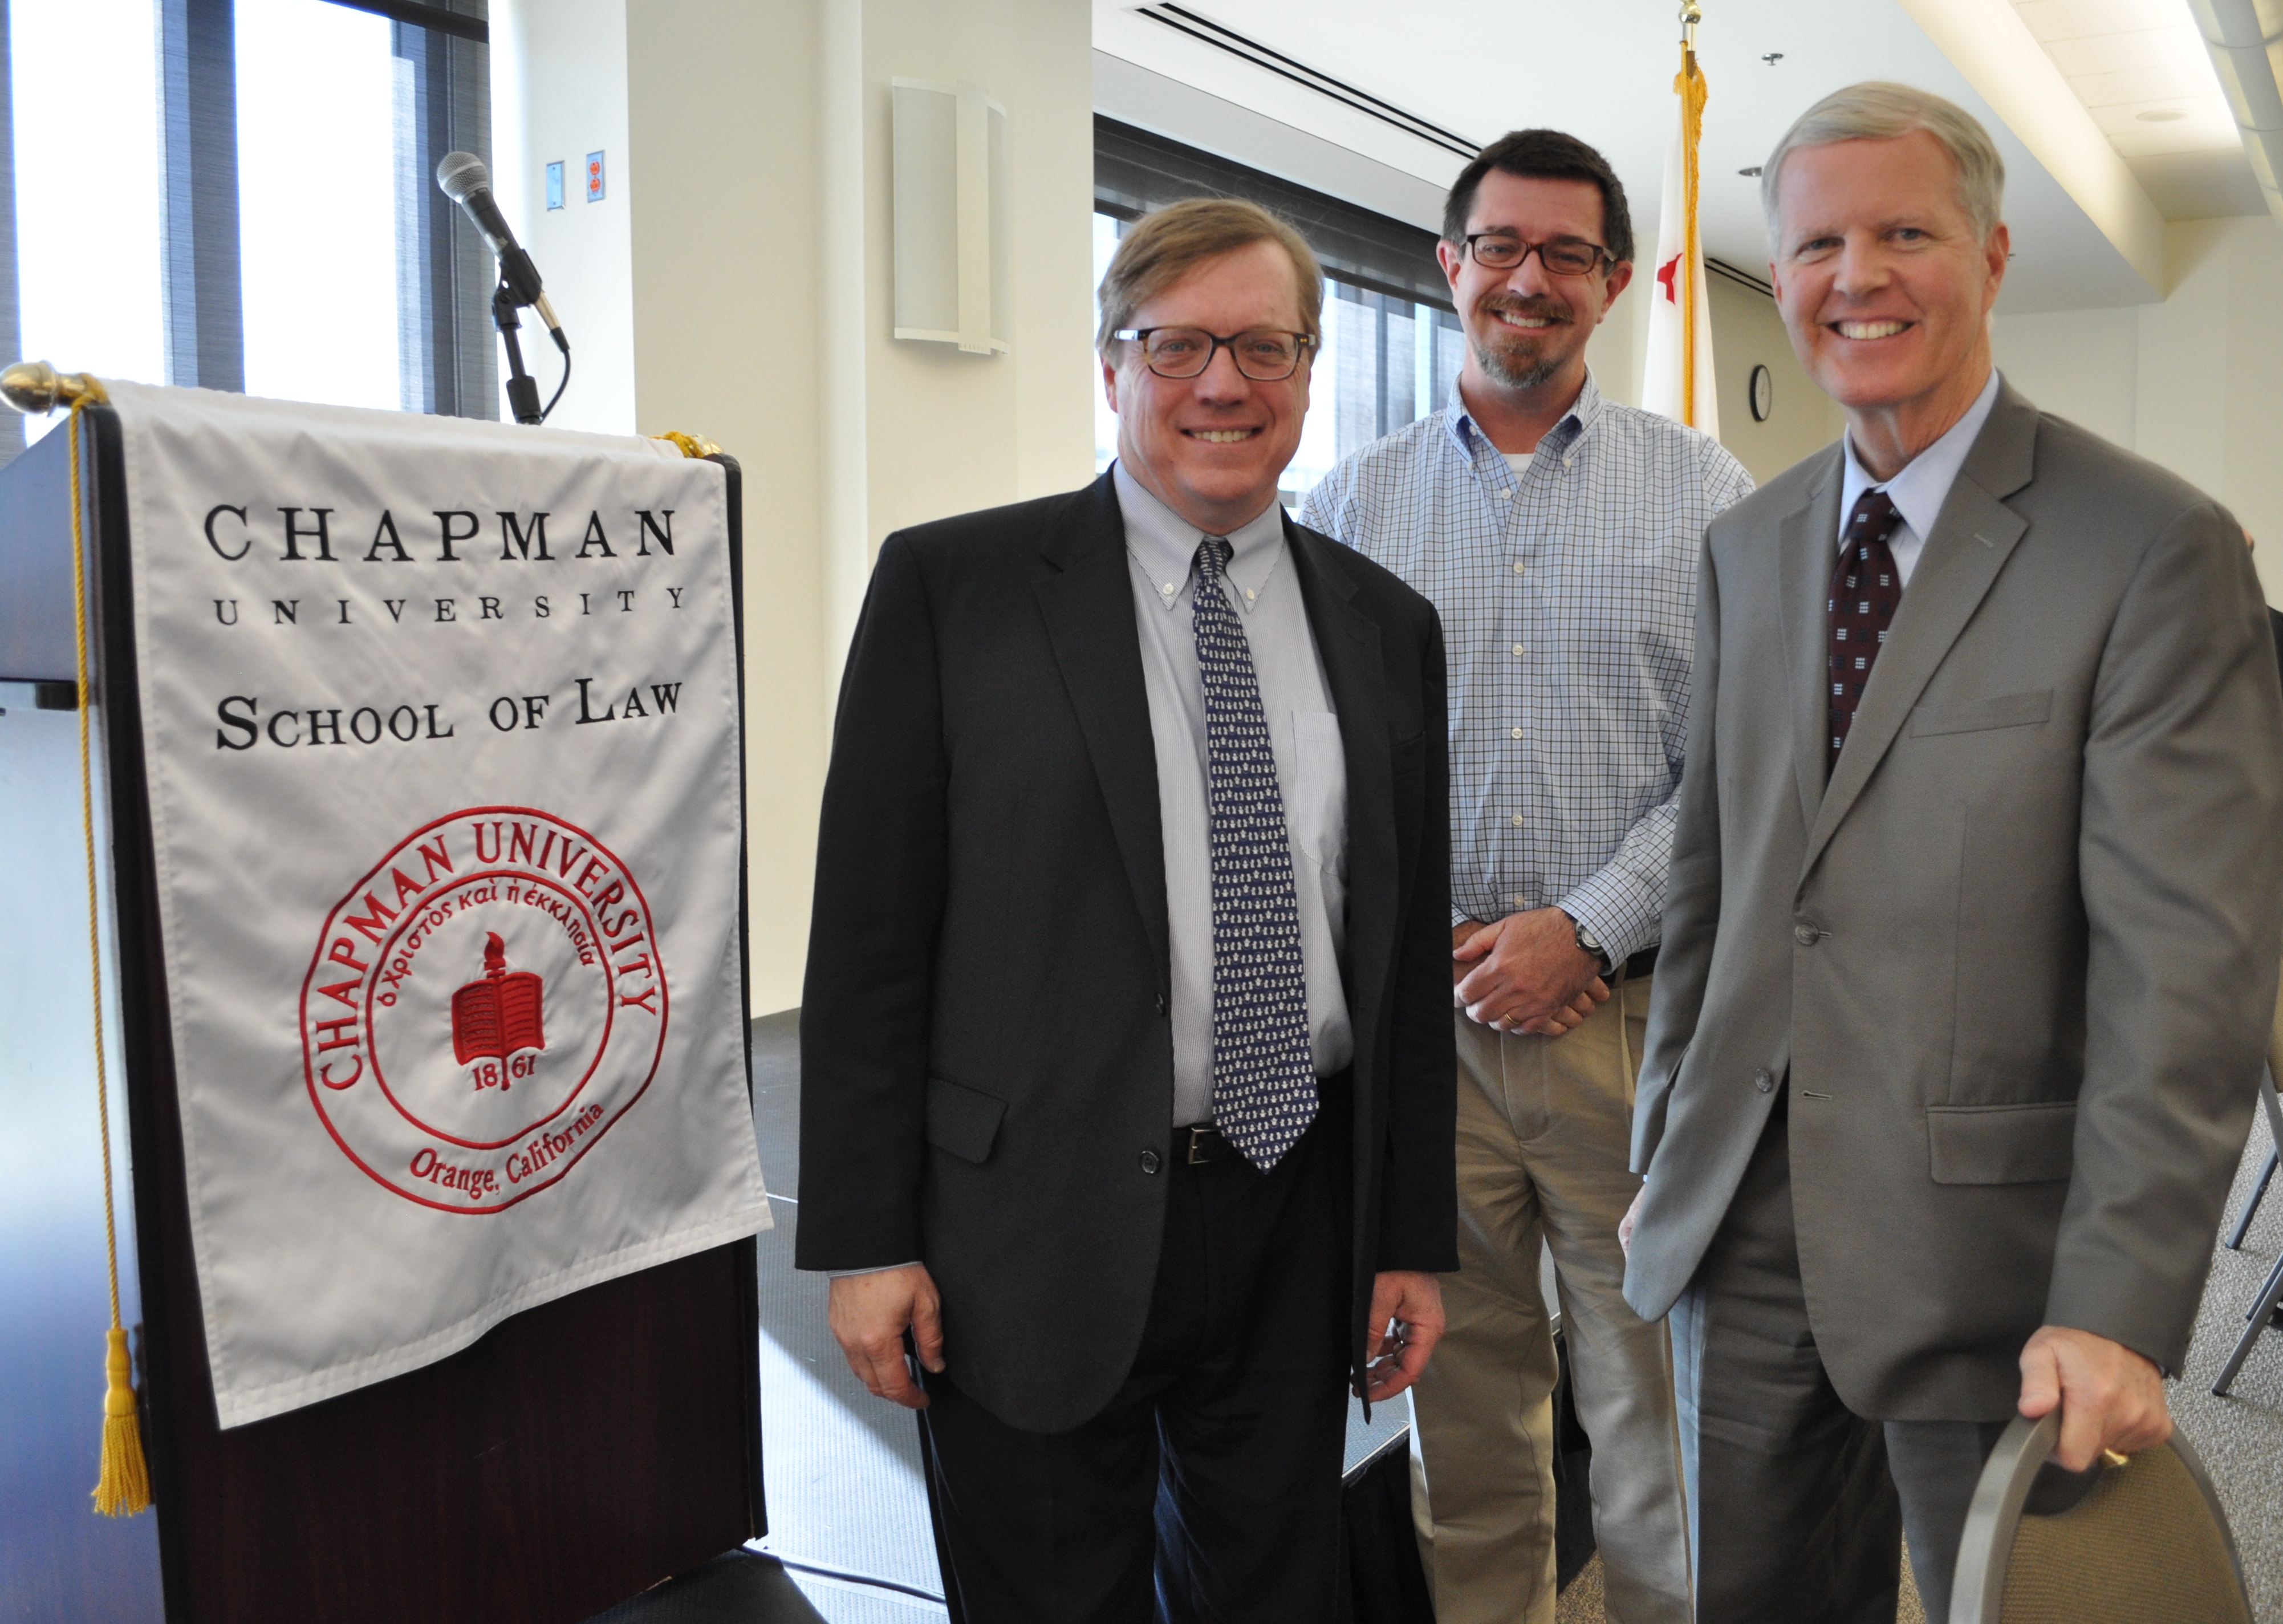 Ambassador David Scheffer, far left, is joined by John Hall, professor of law, and Tom Campbell, dean of the Chapman School of Law, during a visit to campus this week.